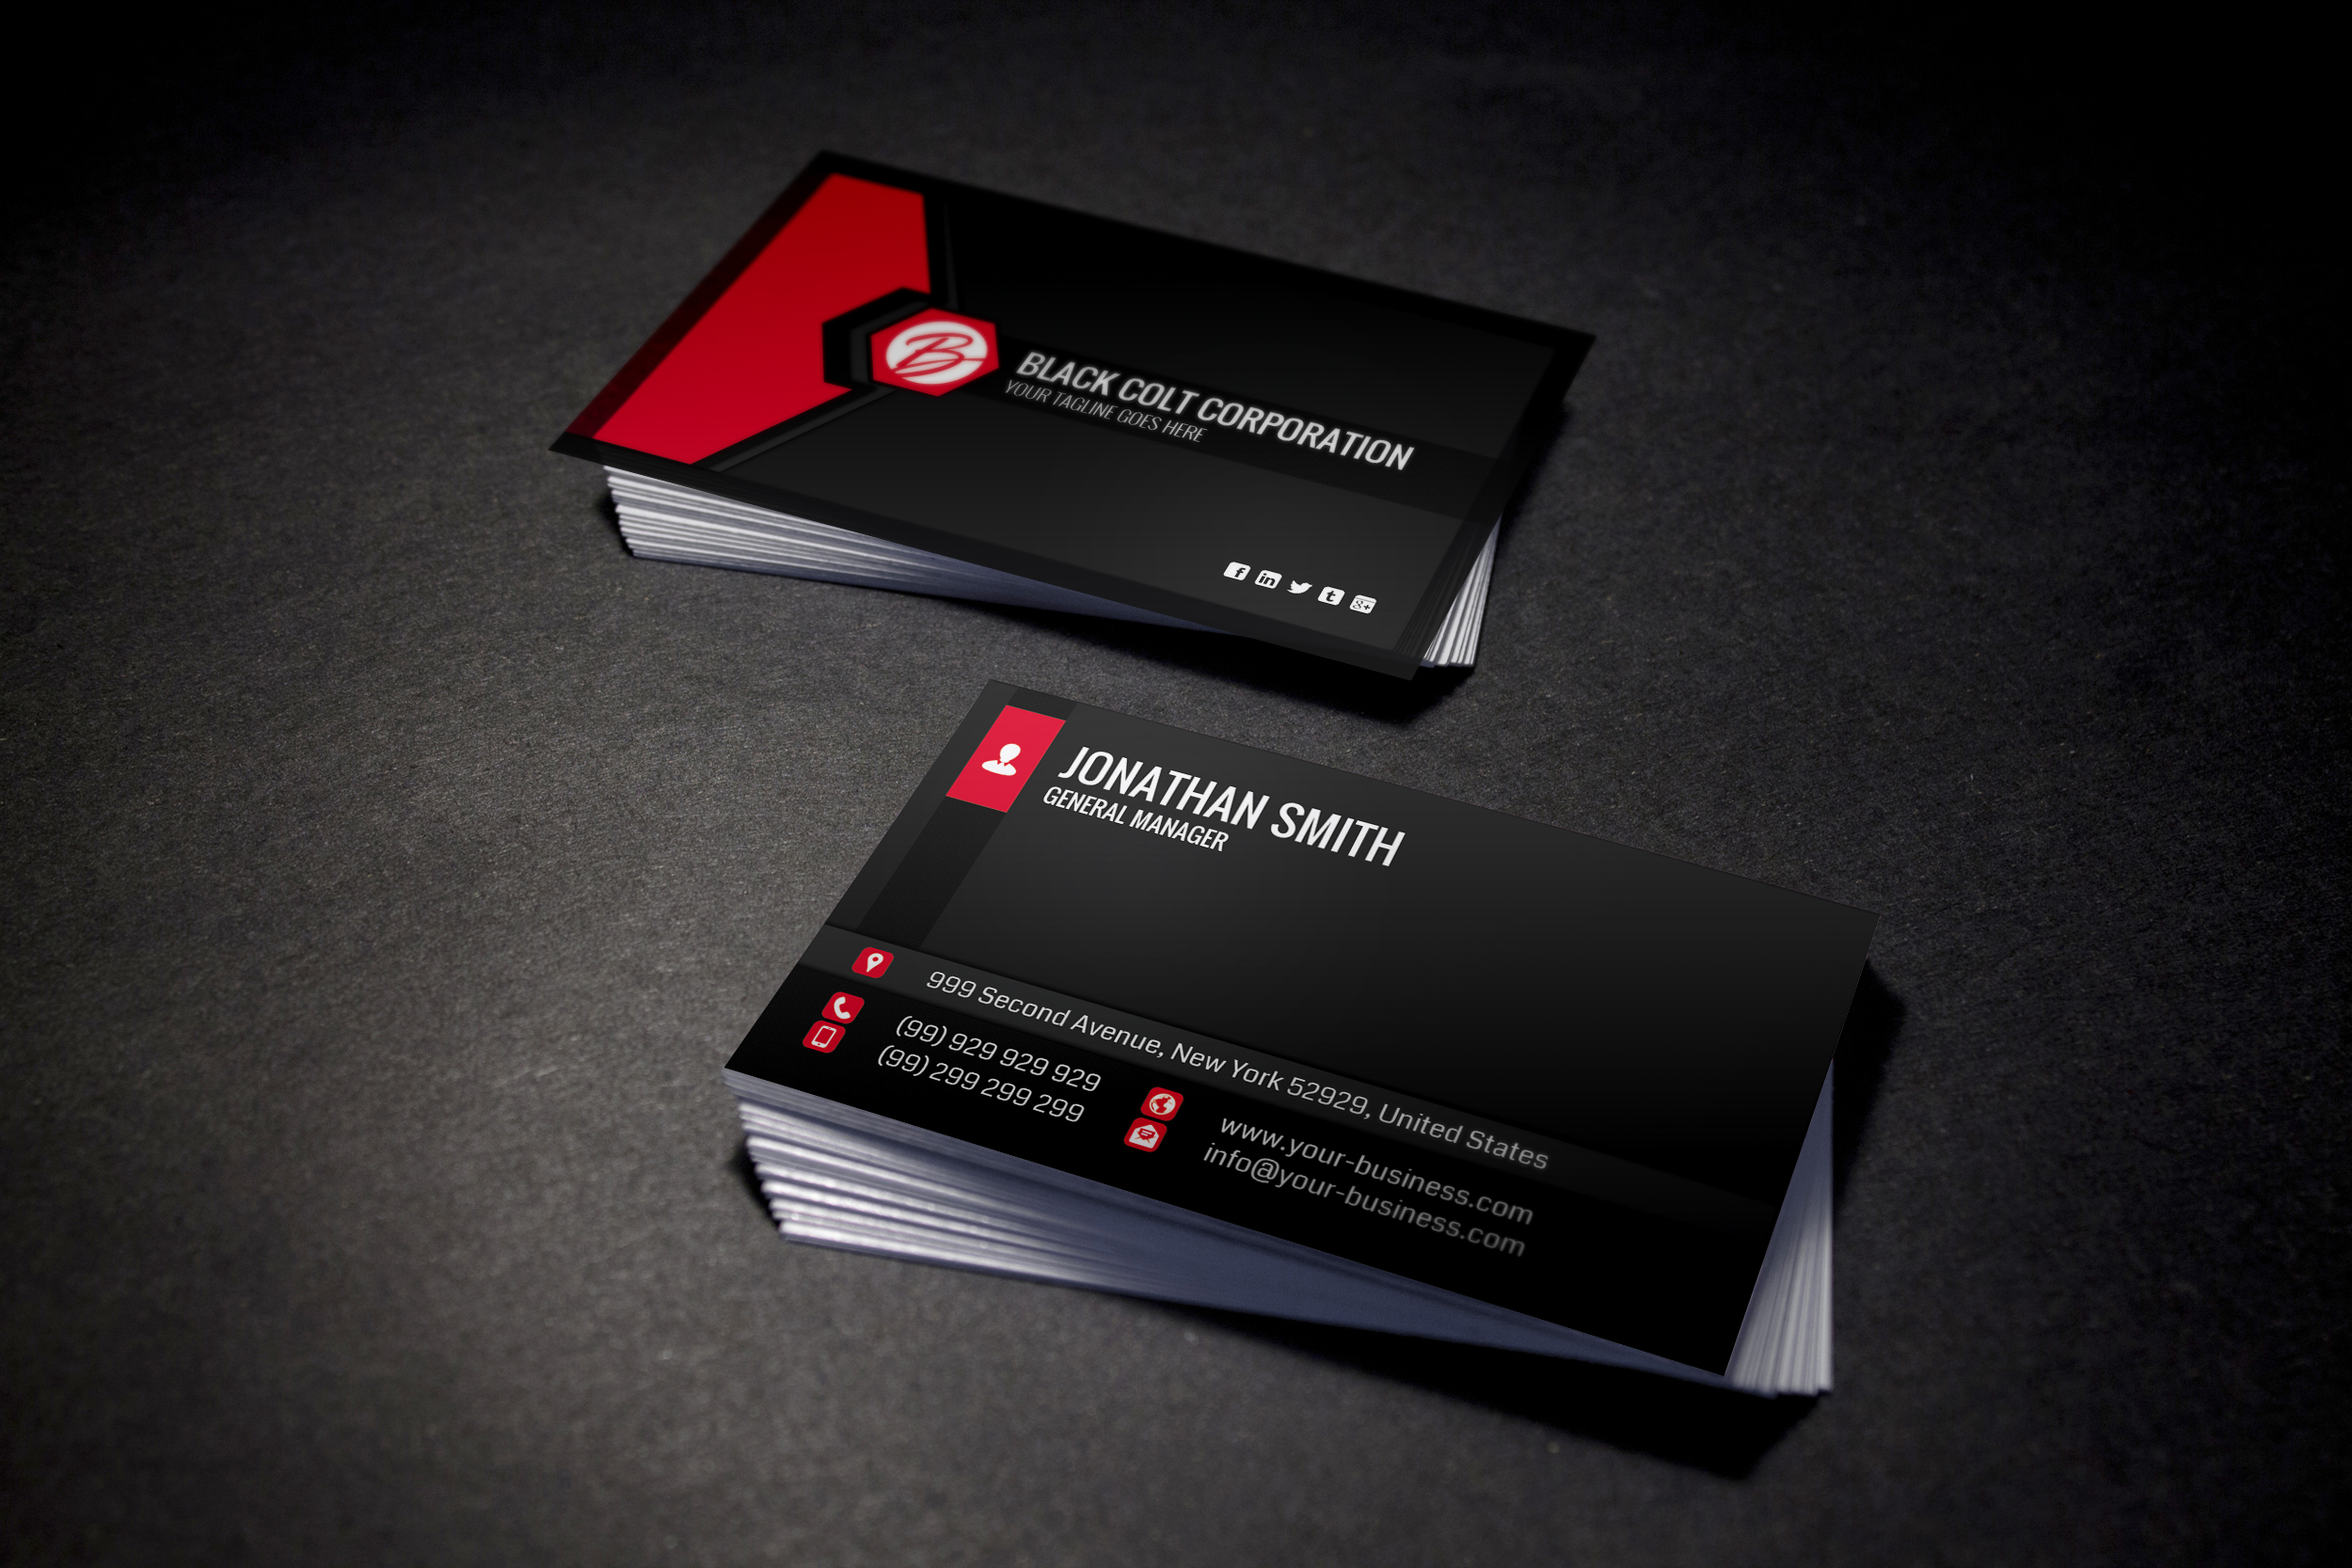 Will deliver more than 500 Business Card Templates for $10 - SEOClerks